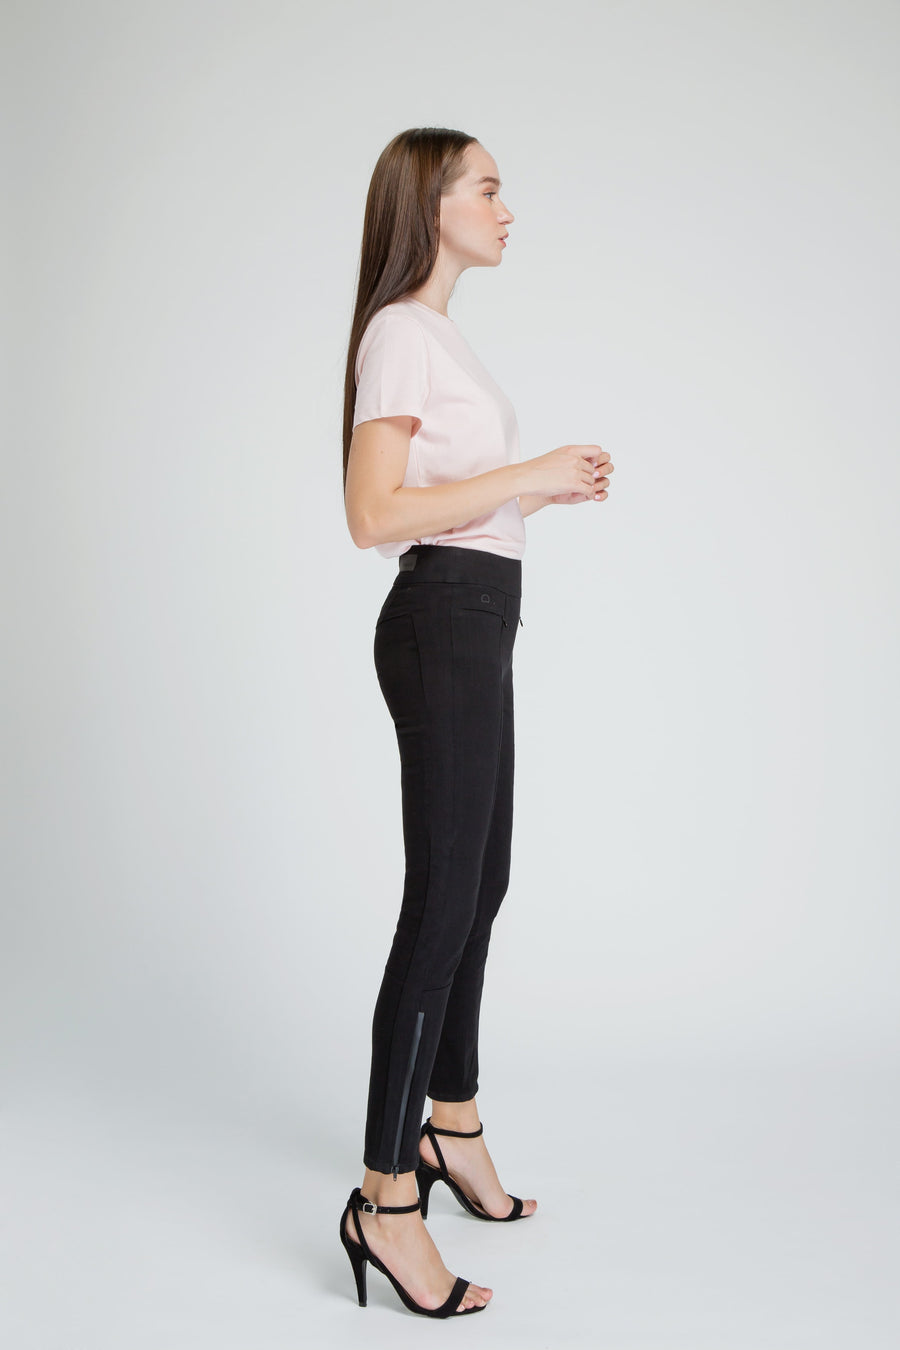 SUN UP - DREAM SHAPER - High Waist Skinny